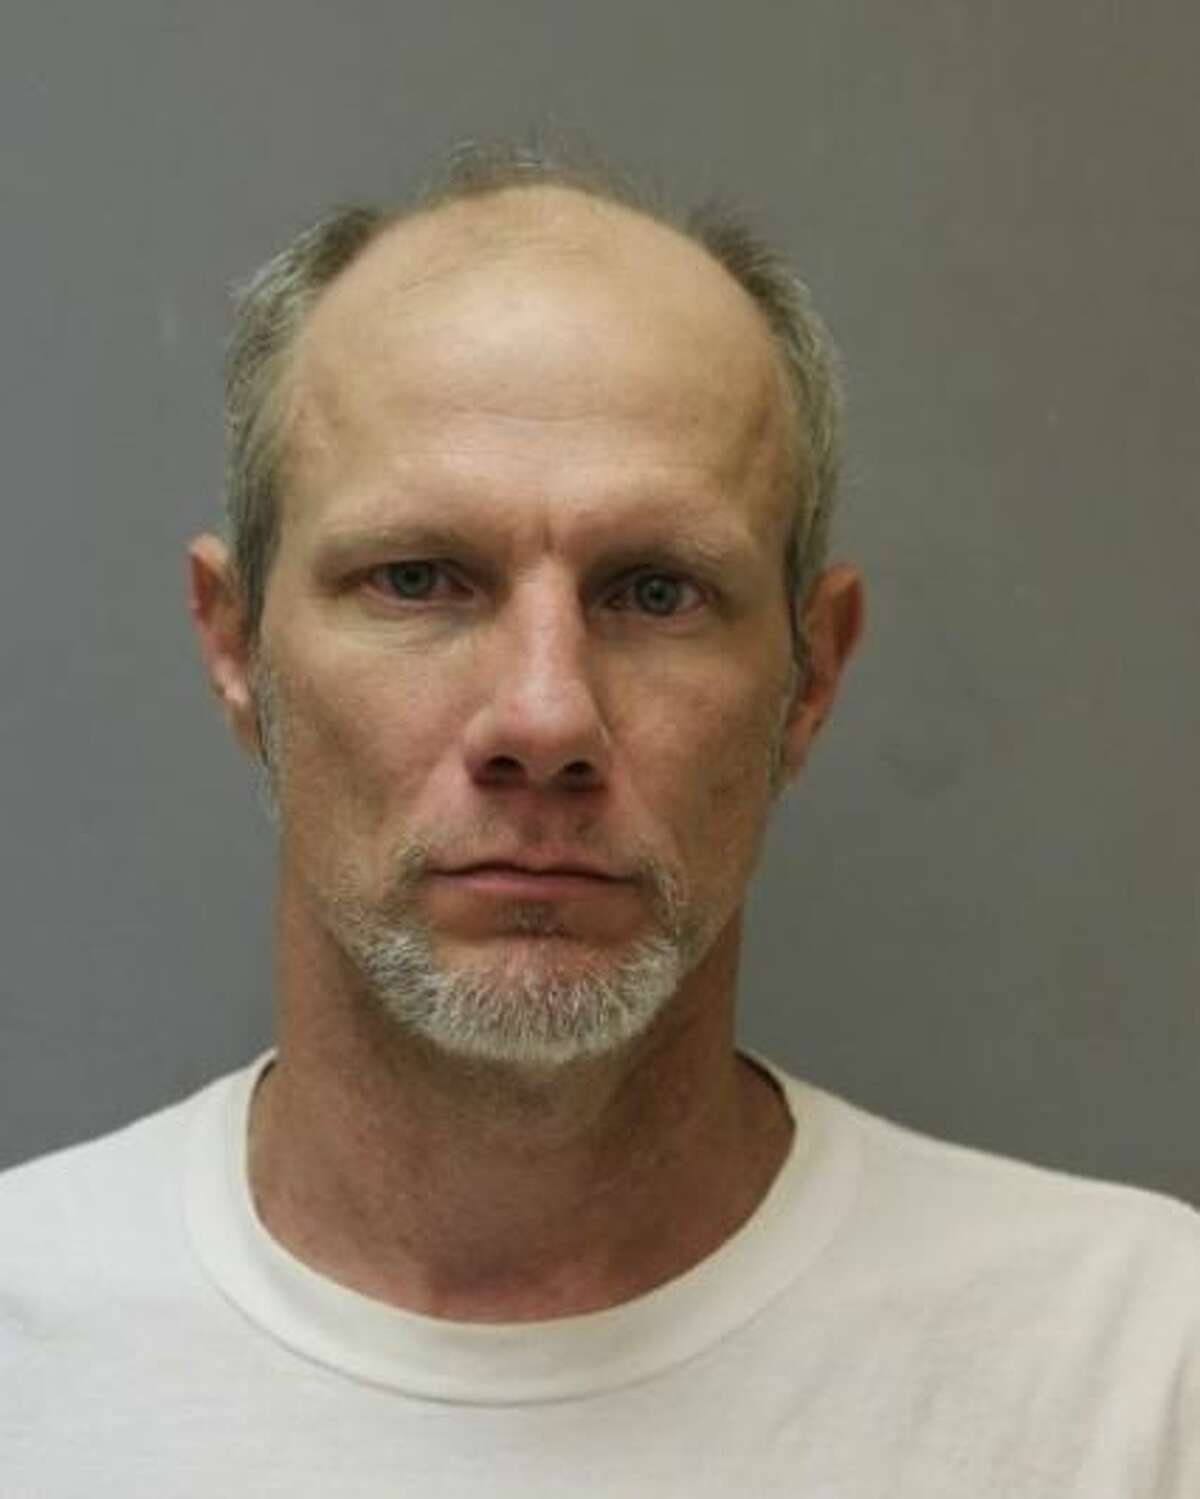 An LPD officer assigned to the U.S. Marshals Fugitive Task Force arrested Jeremy Daniel Key, 41, without incident June 23 at the Evelyn Motor Inn at 2720 San Bernardo Ave.